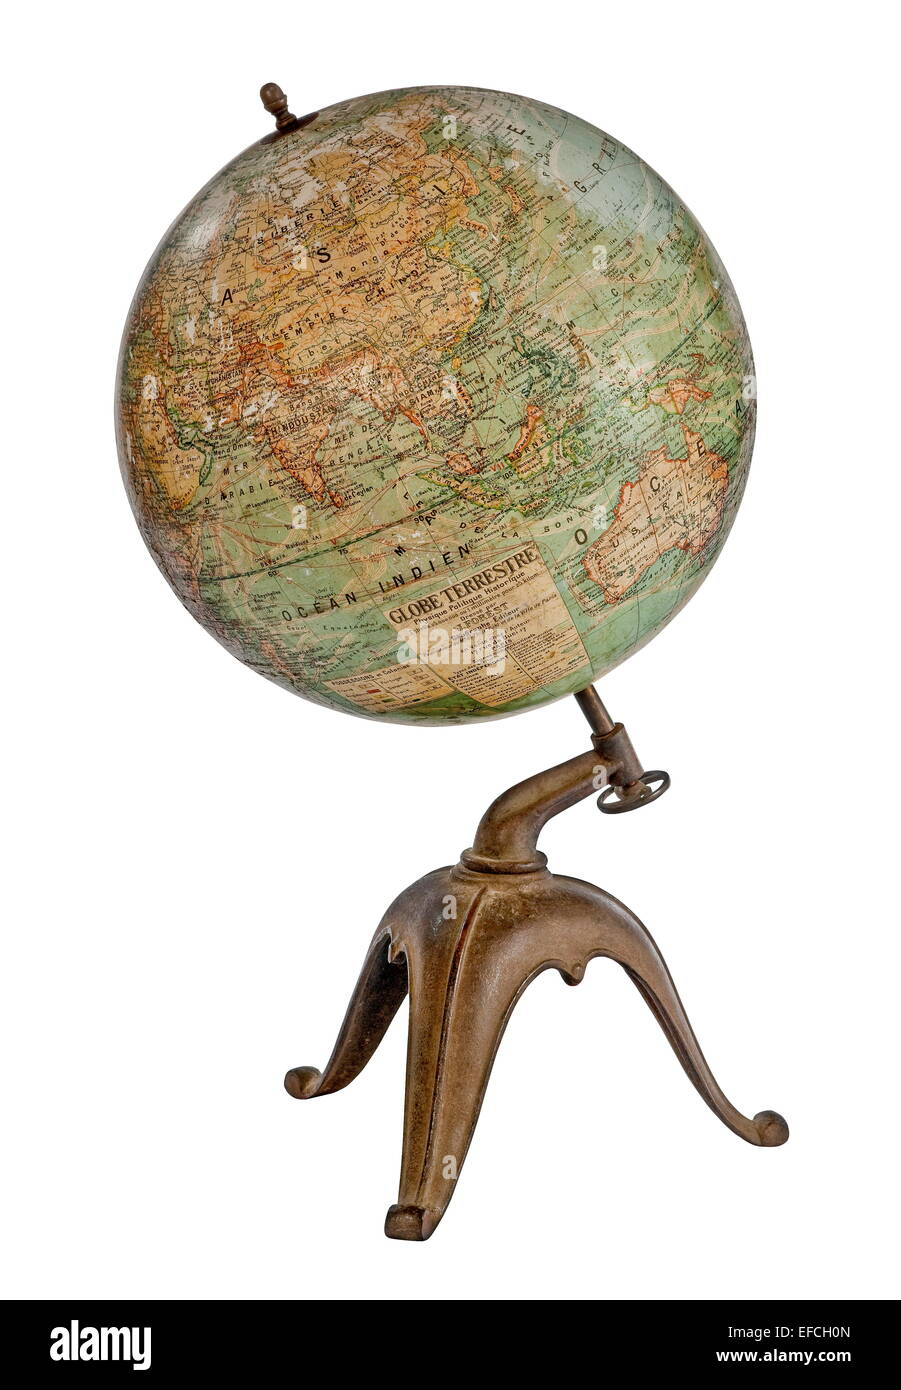 old antique desk top world globe on stand isolated on white - Old Antique Desk Top World Globe On Stand Isolated On White Stock